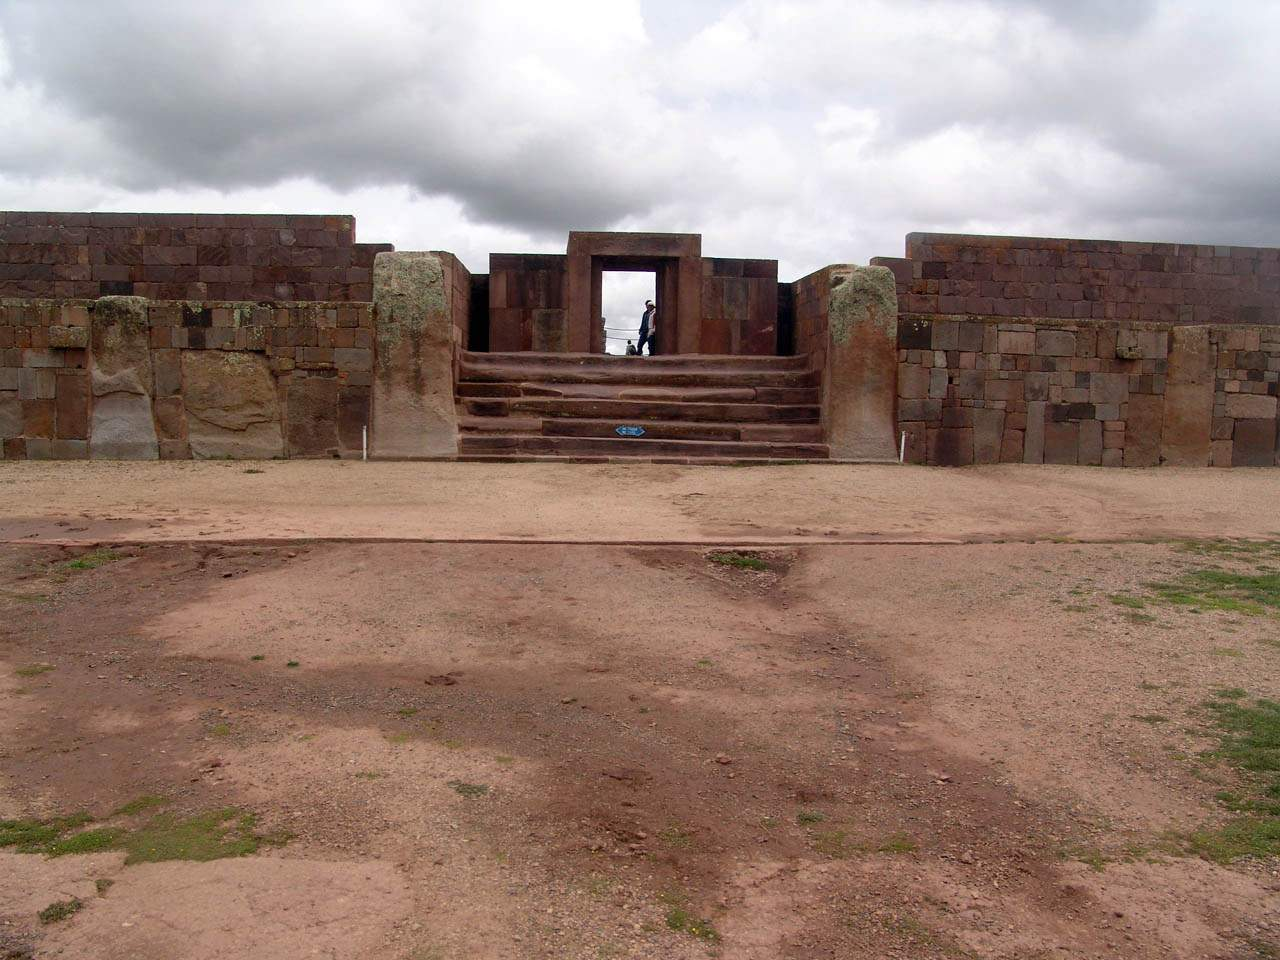 Doorway to Pumapunku megalithic